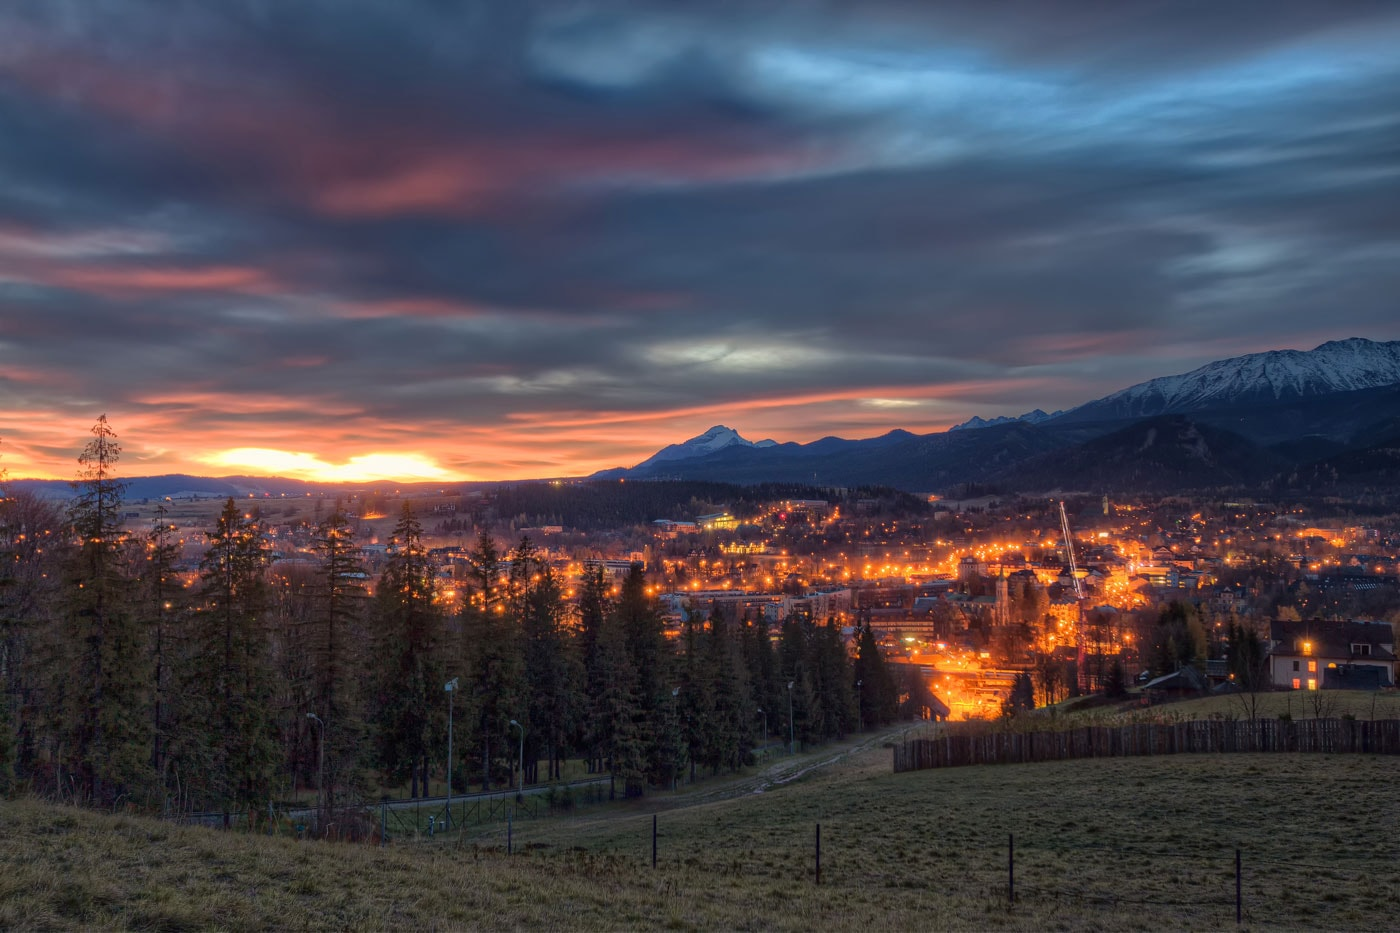 Zakopane and Tatra Mountains at Night from Gubalowka Hill. HDR Photo from Poland